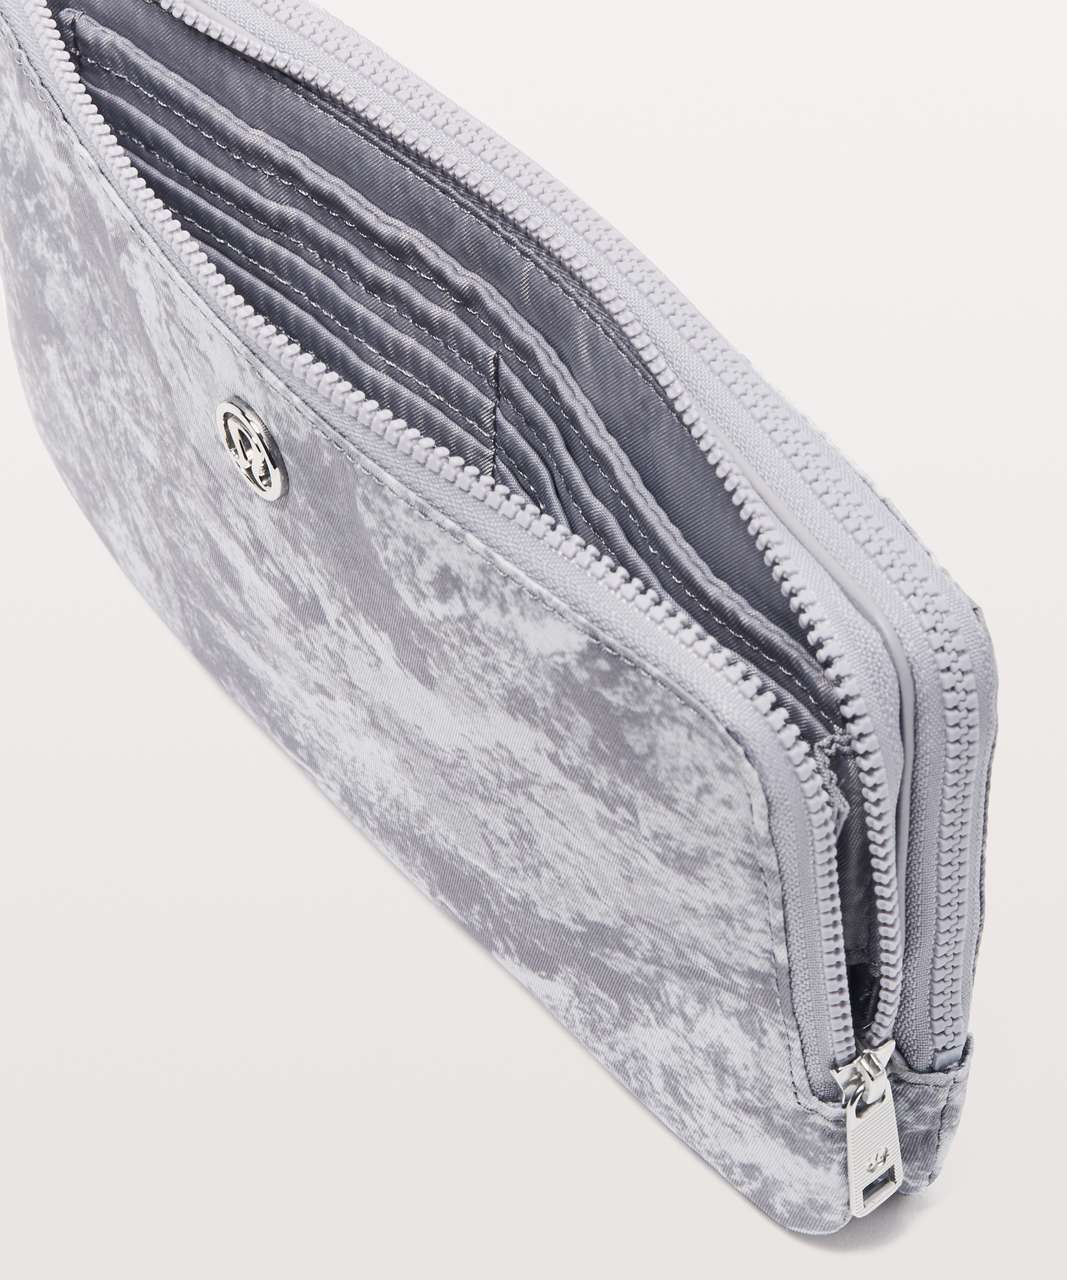 Lululemon Double Up Pouch - Washed Marble Alpine White Silverscreen